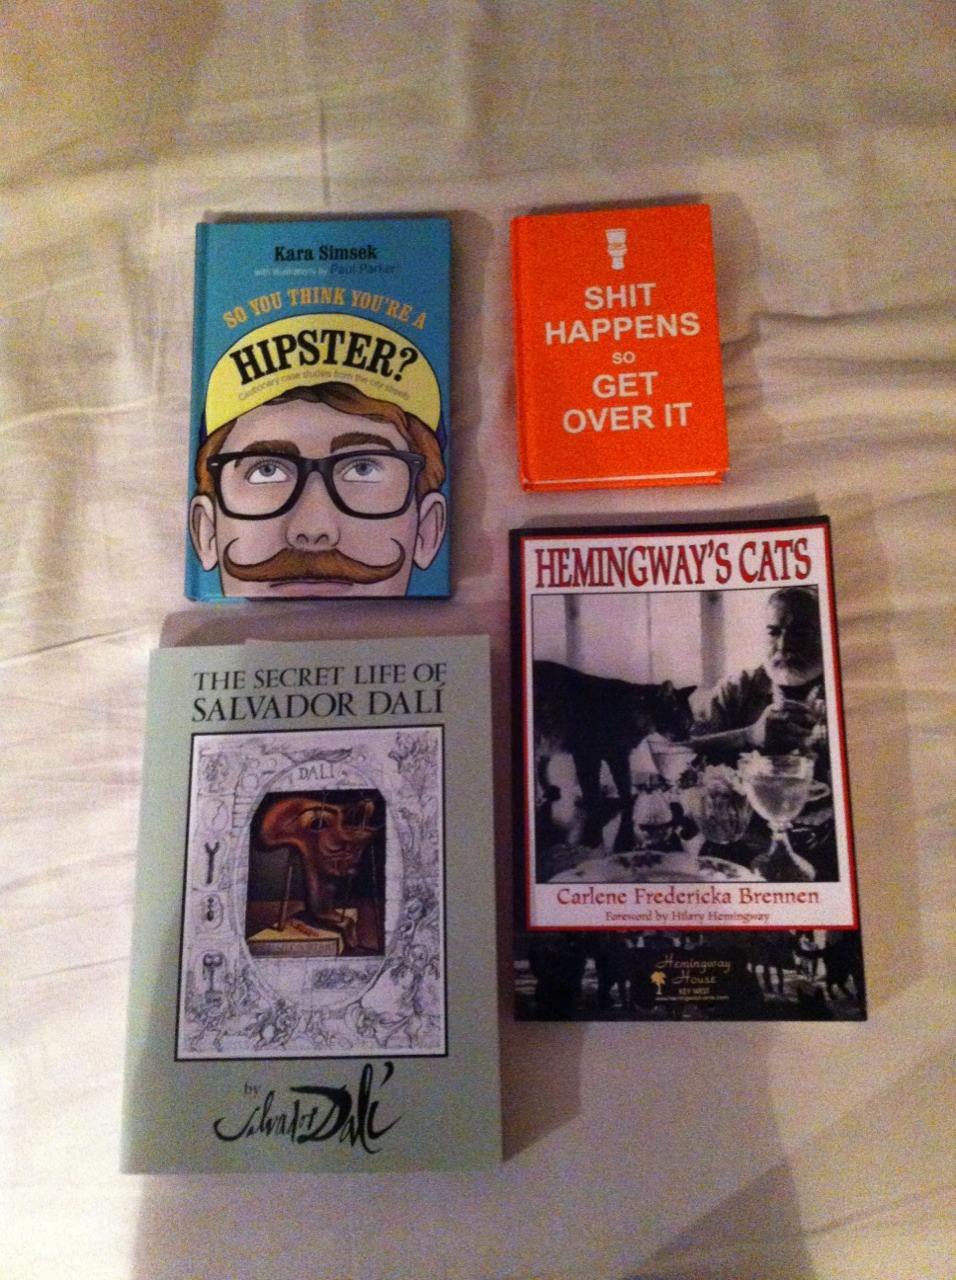 Books I bought on my Florida trip